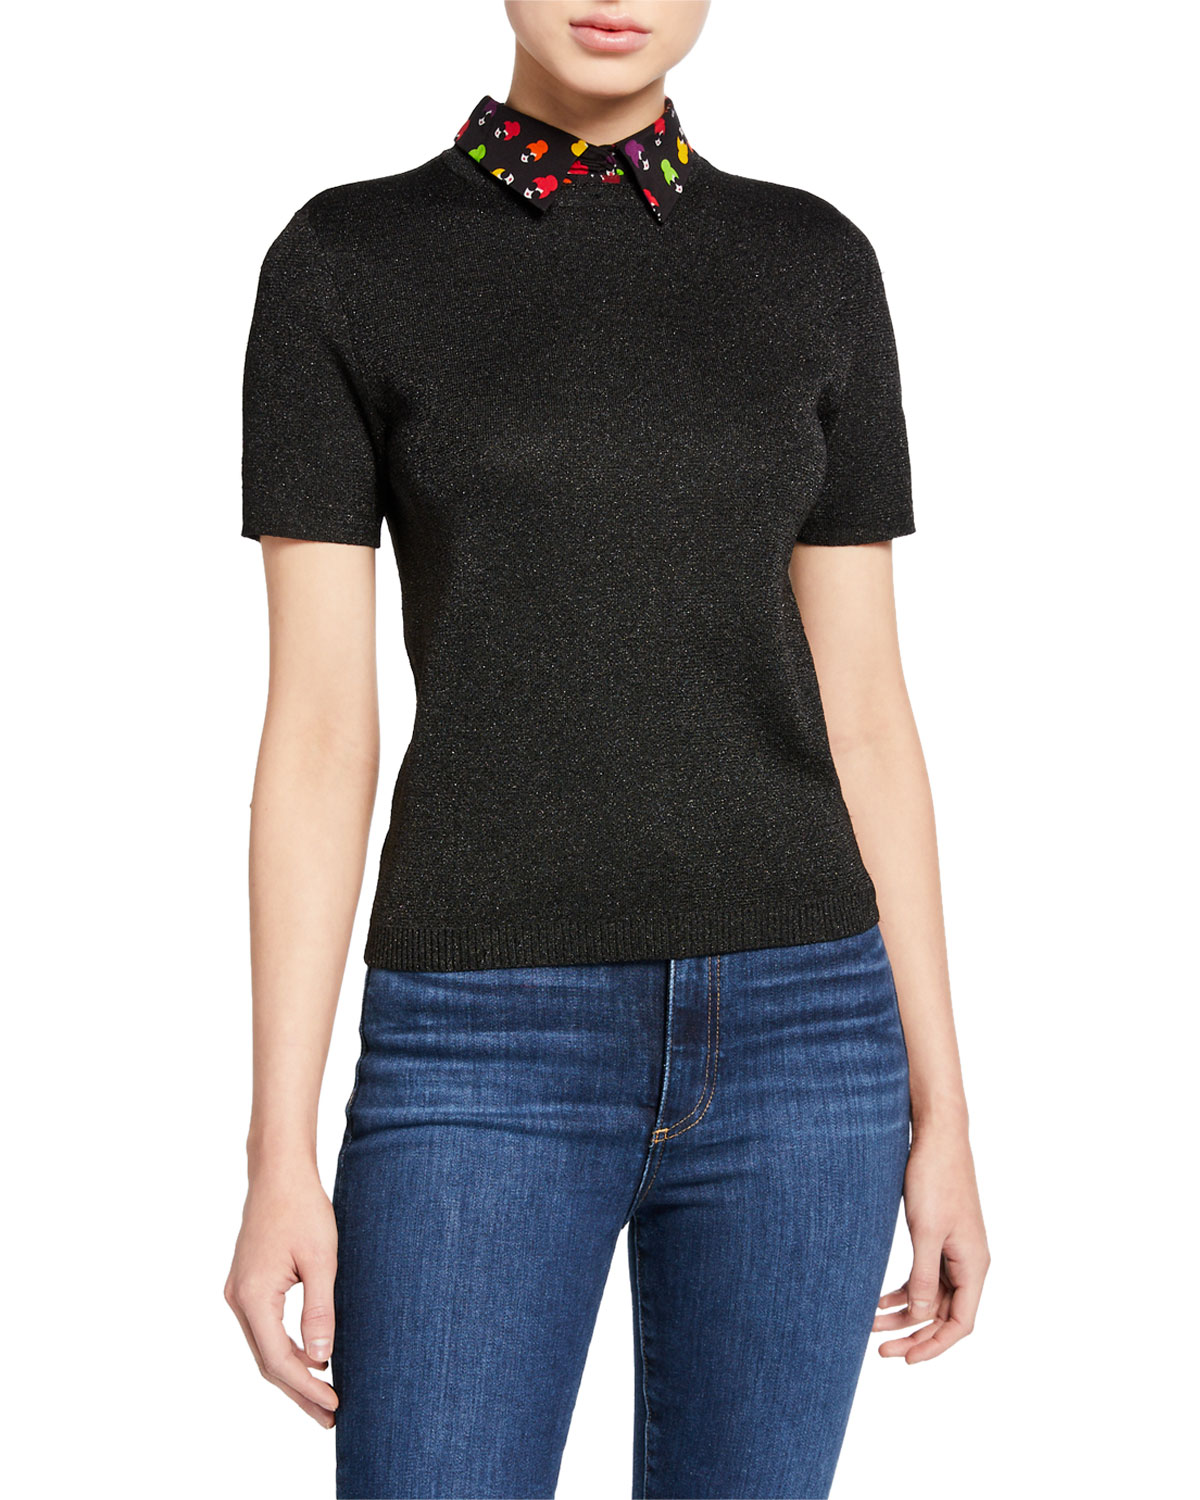 Aster Short Sleeve Collared Pullover Sweater by Alice + Olivia